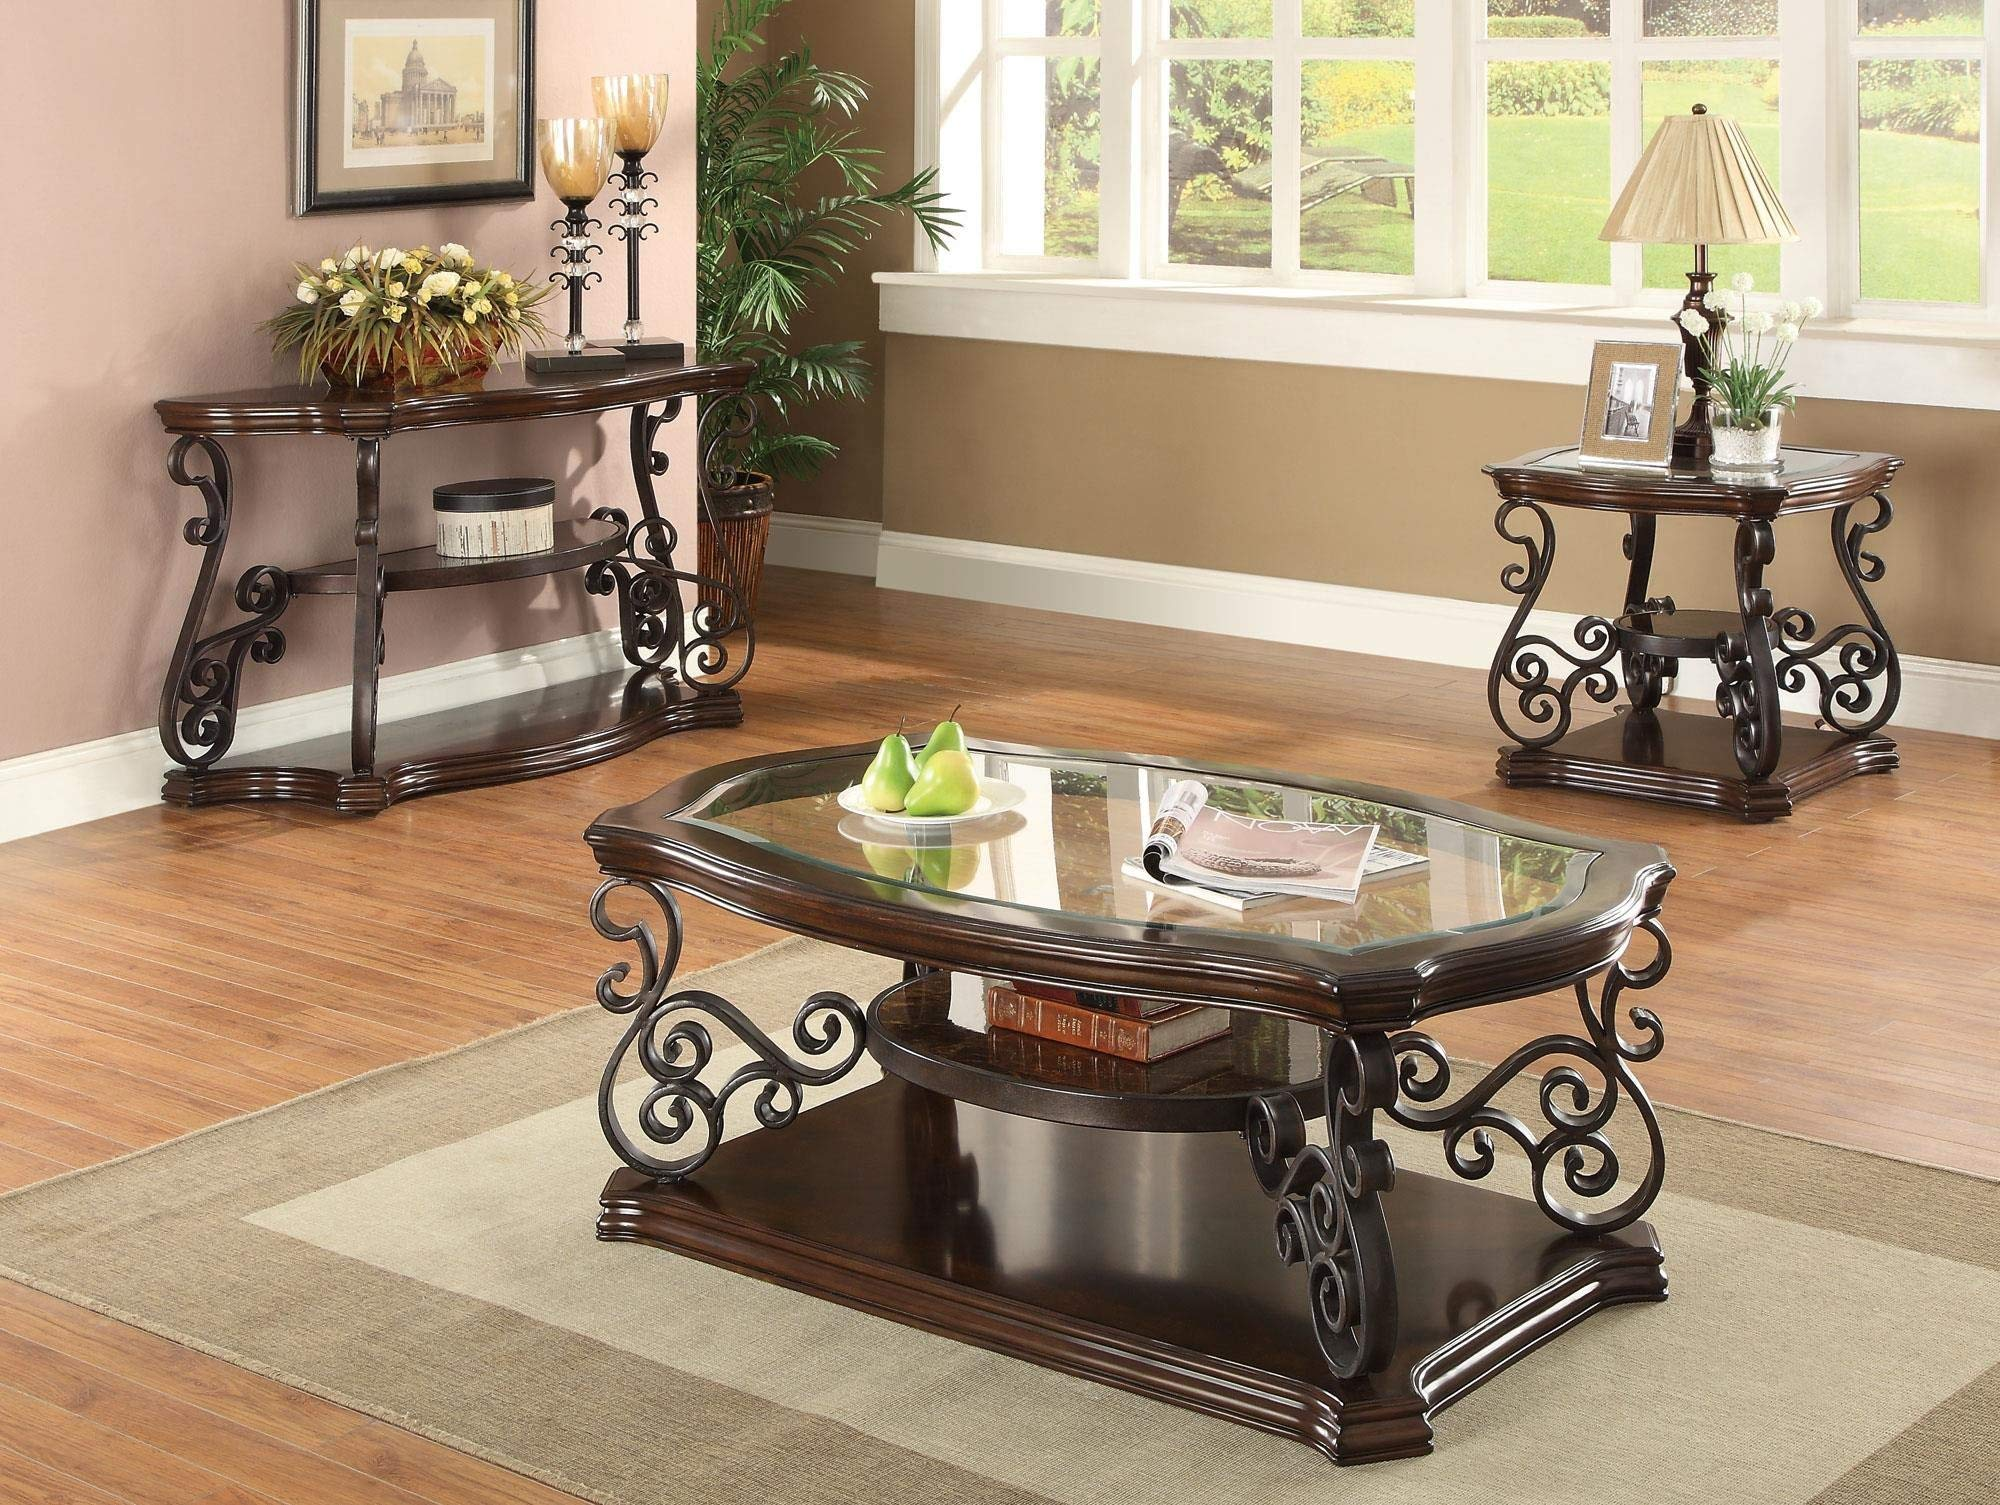 Coaster Home Furnishings 702447 End Table with Tempered Glass Top, Dark Brown by Coaster Home Furnishings